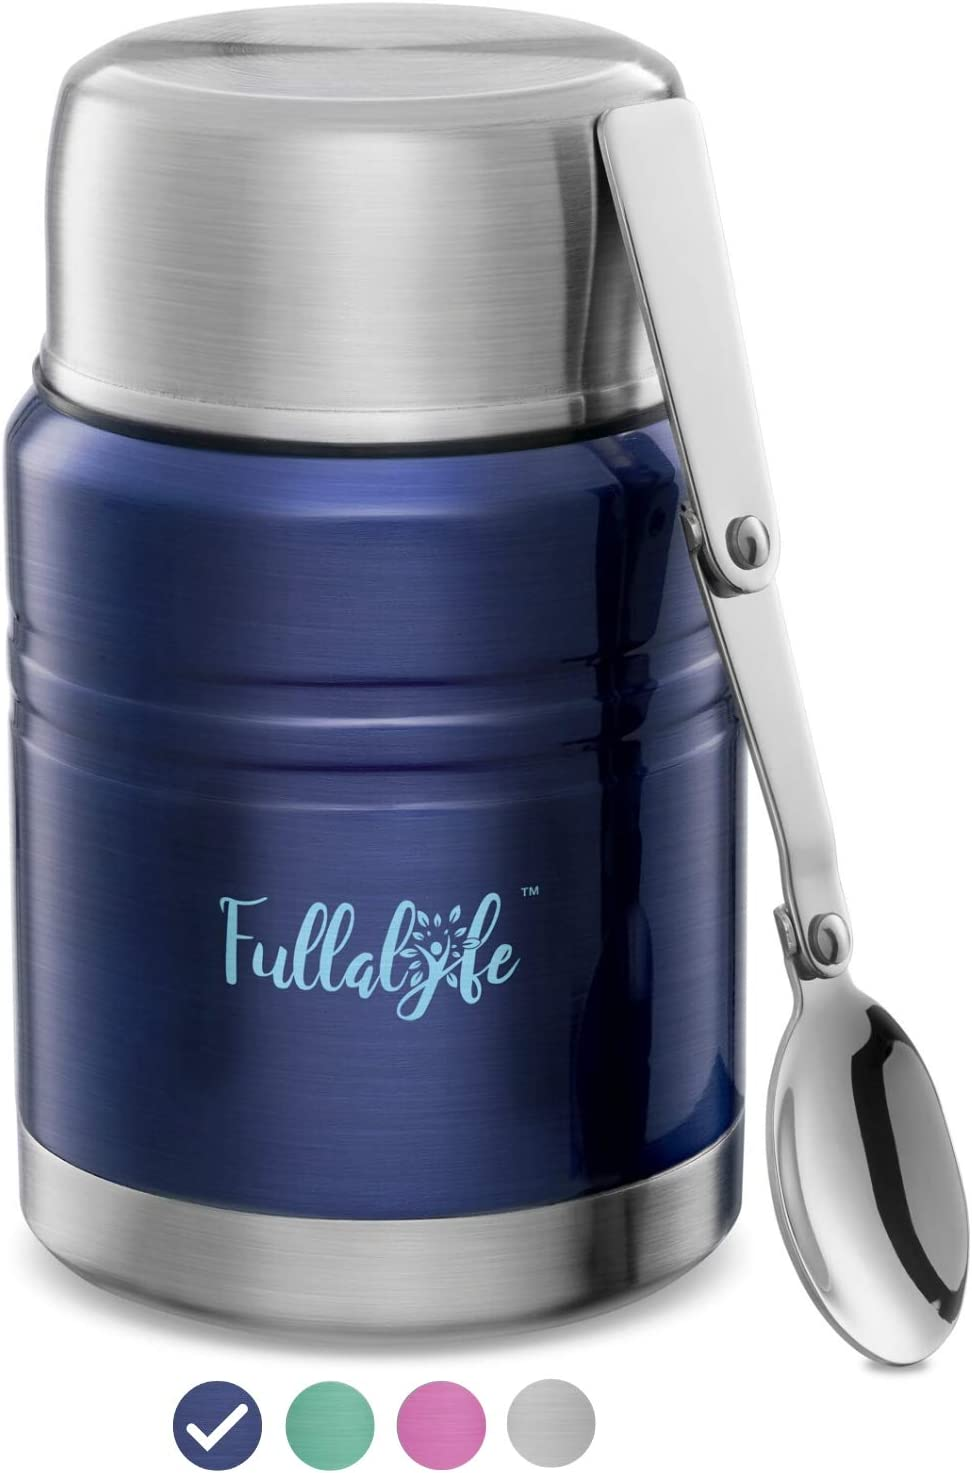 Fullalyfe Thermos Food Jar, 17 oz Stainless Steel Double Wall Vacuum Insulated Hot Food Container with Spoon and Wide Mouth, Soup Thermos for Kids and Adults, BPA Free - Stylish Design (Royal Blue)